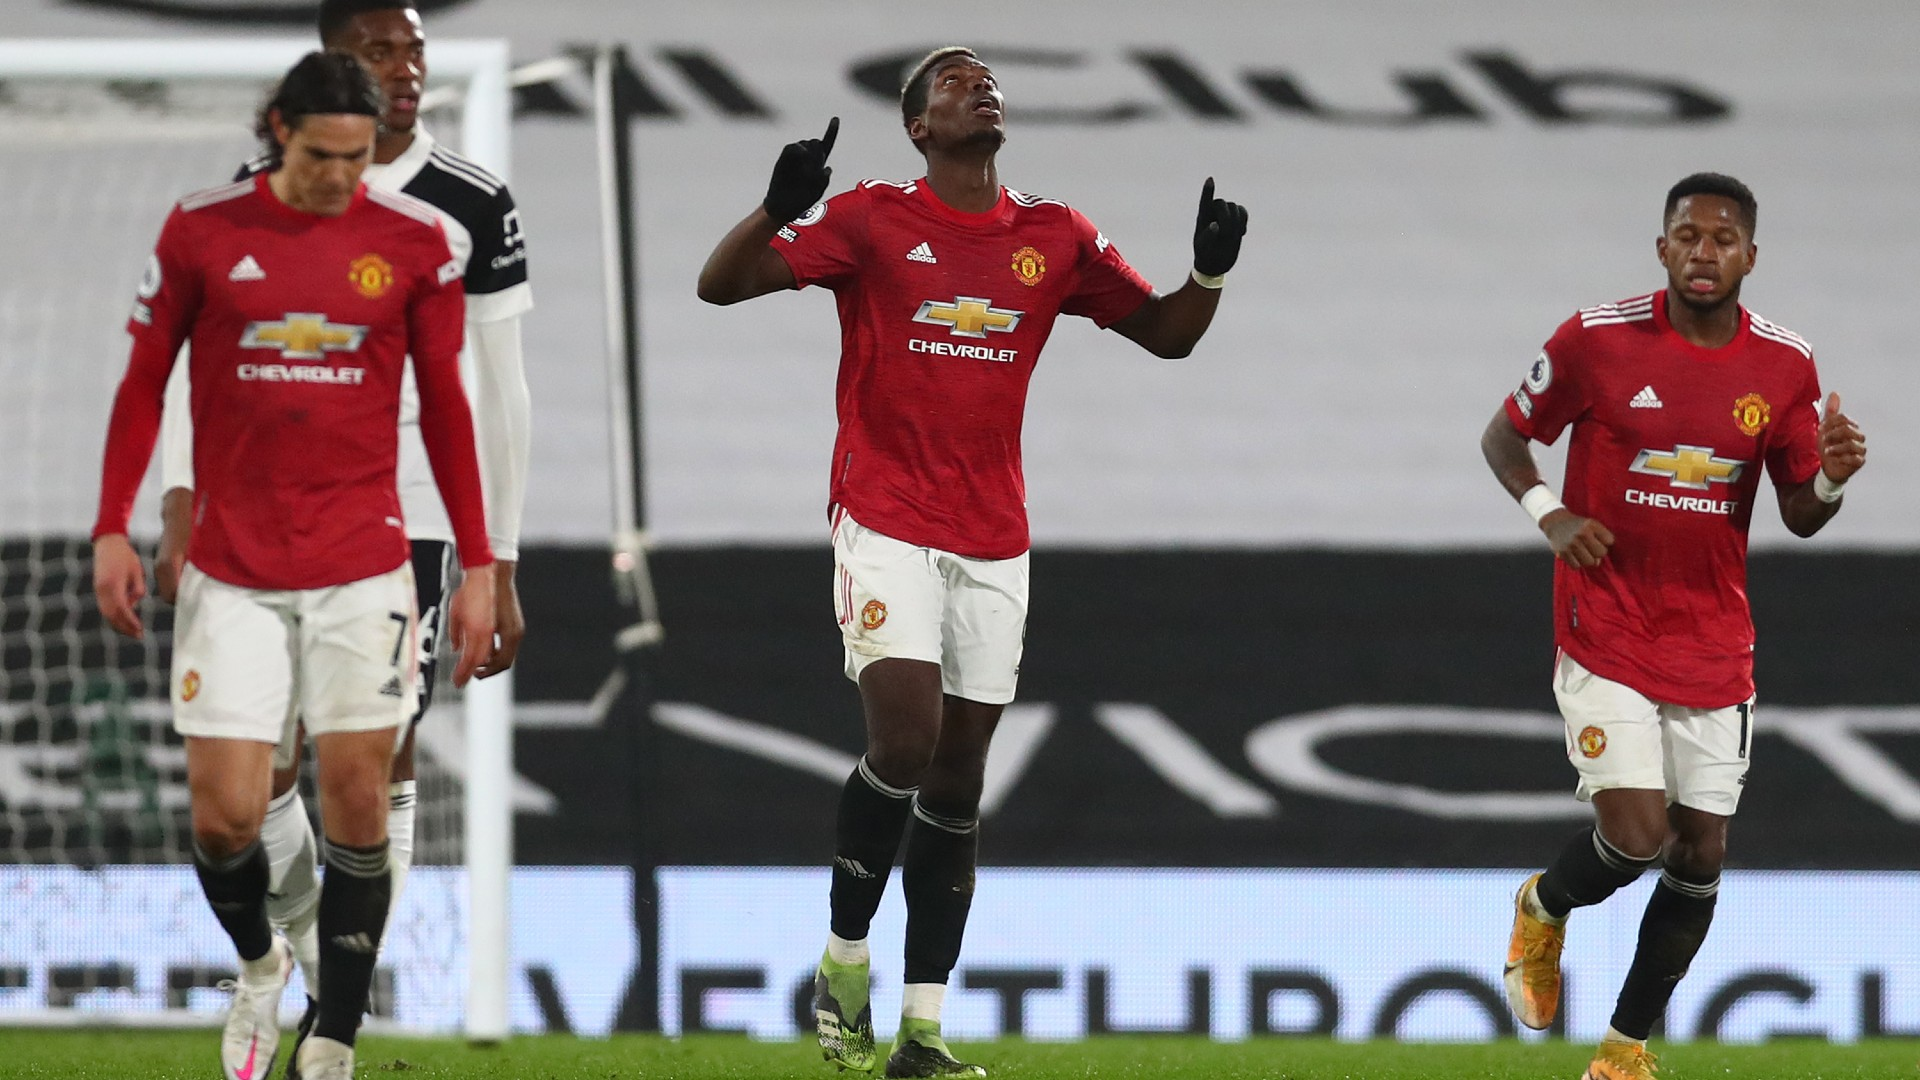 'Pogba can do everything' - Solskjaer salutes in-form Man Utd midfielder after Fulham winner